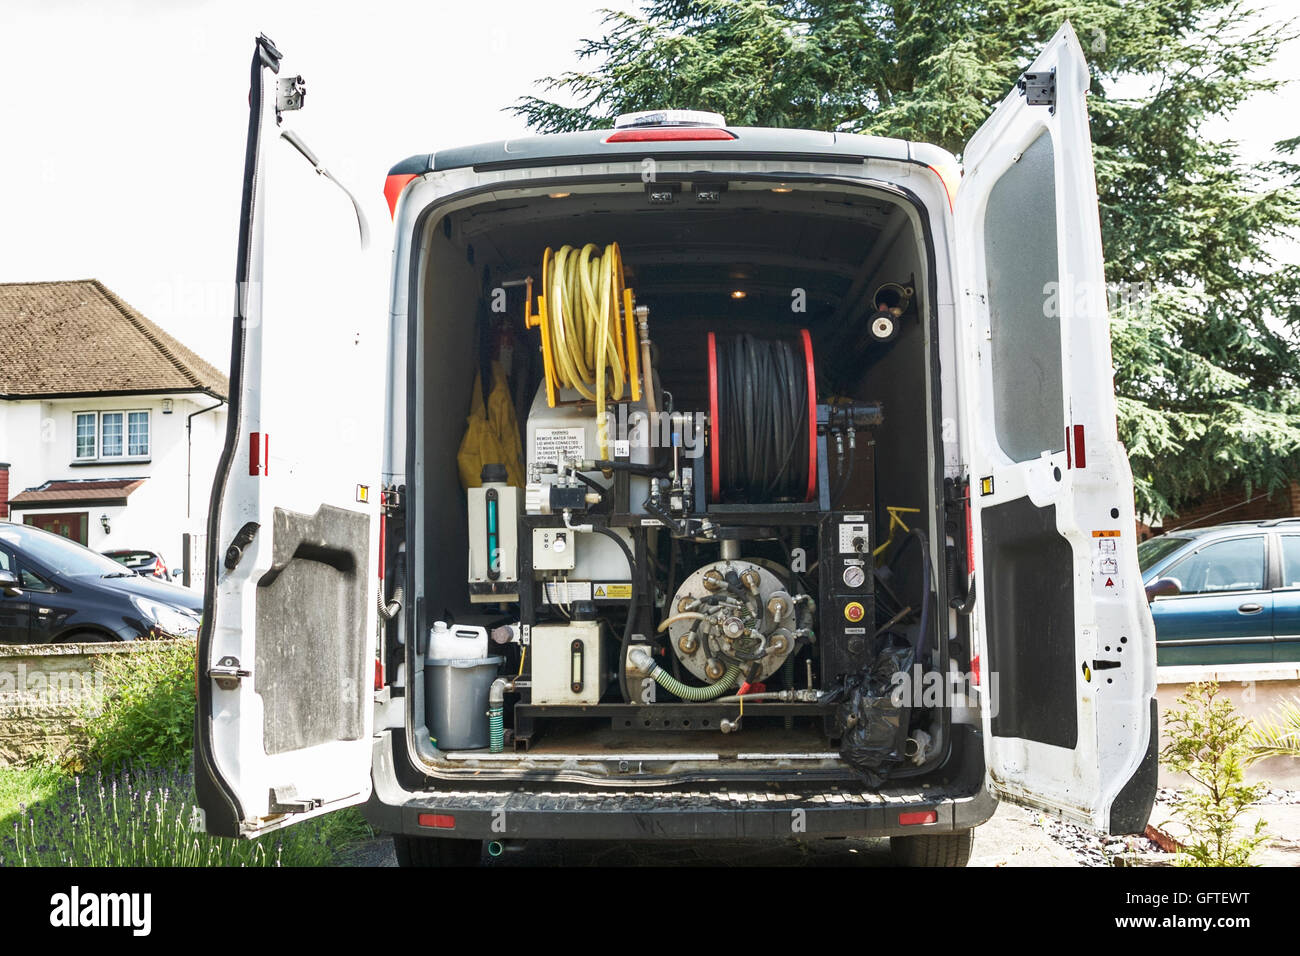 Dyno Rod van with Harben high pressure jet 4000 psi used to clear blockages in drains. - Stock Image